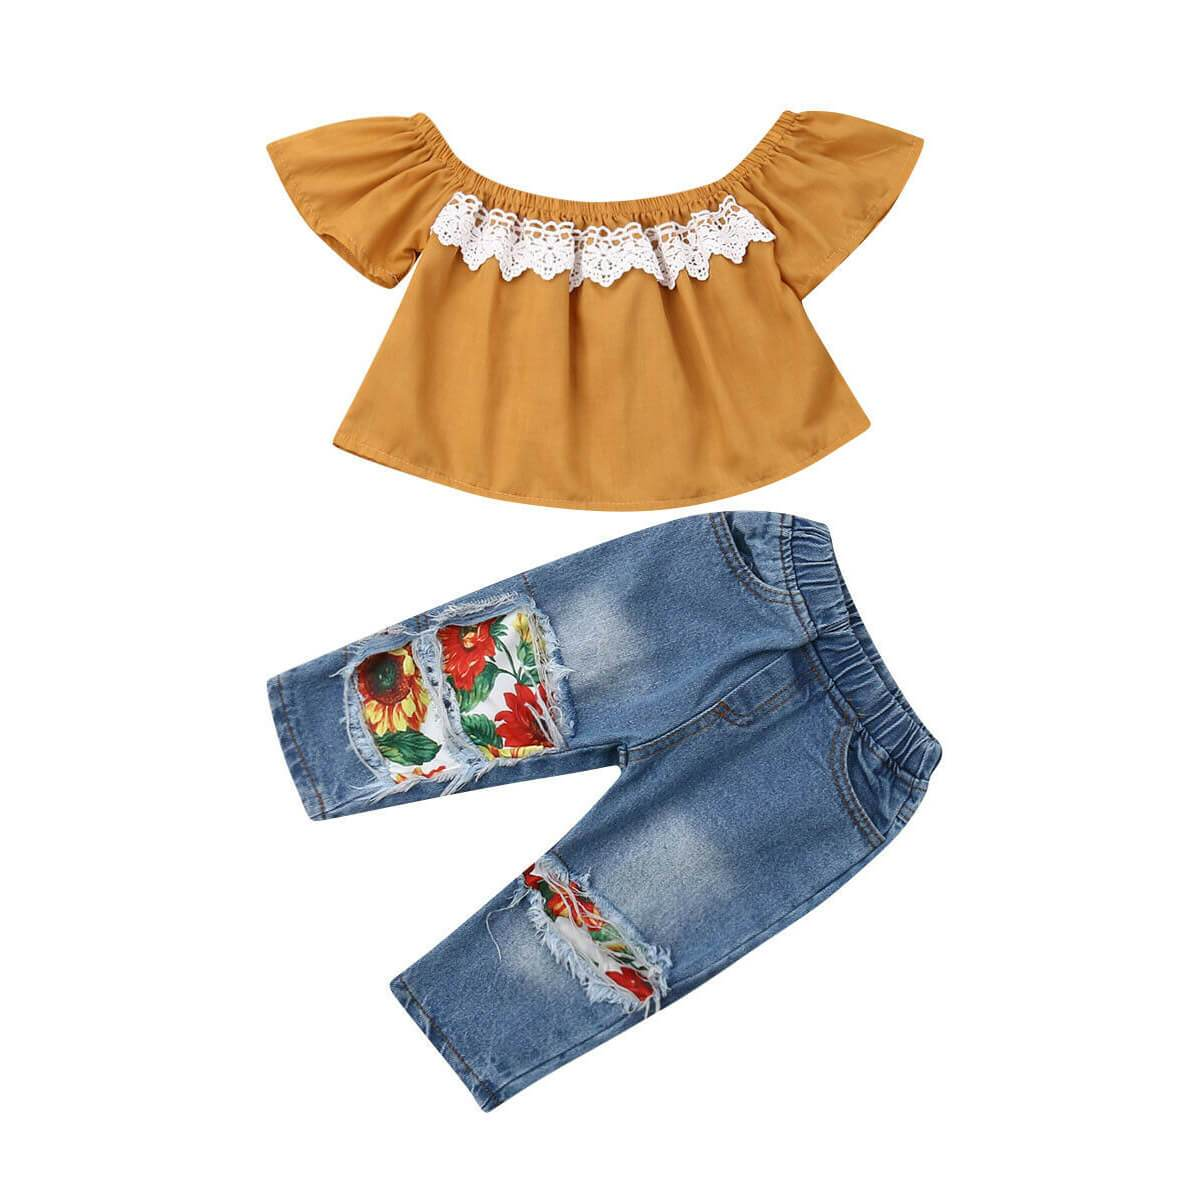 Floral Jean Set - The Trendy Toddlers